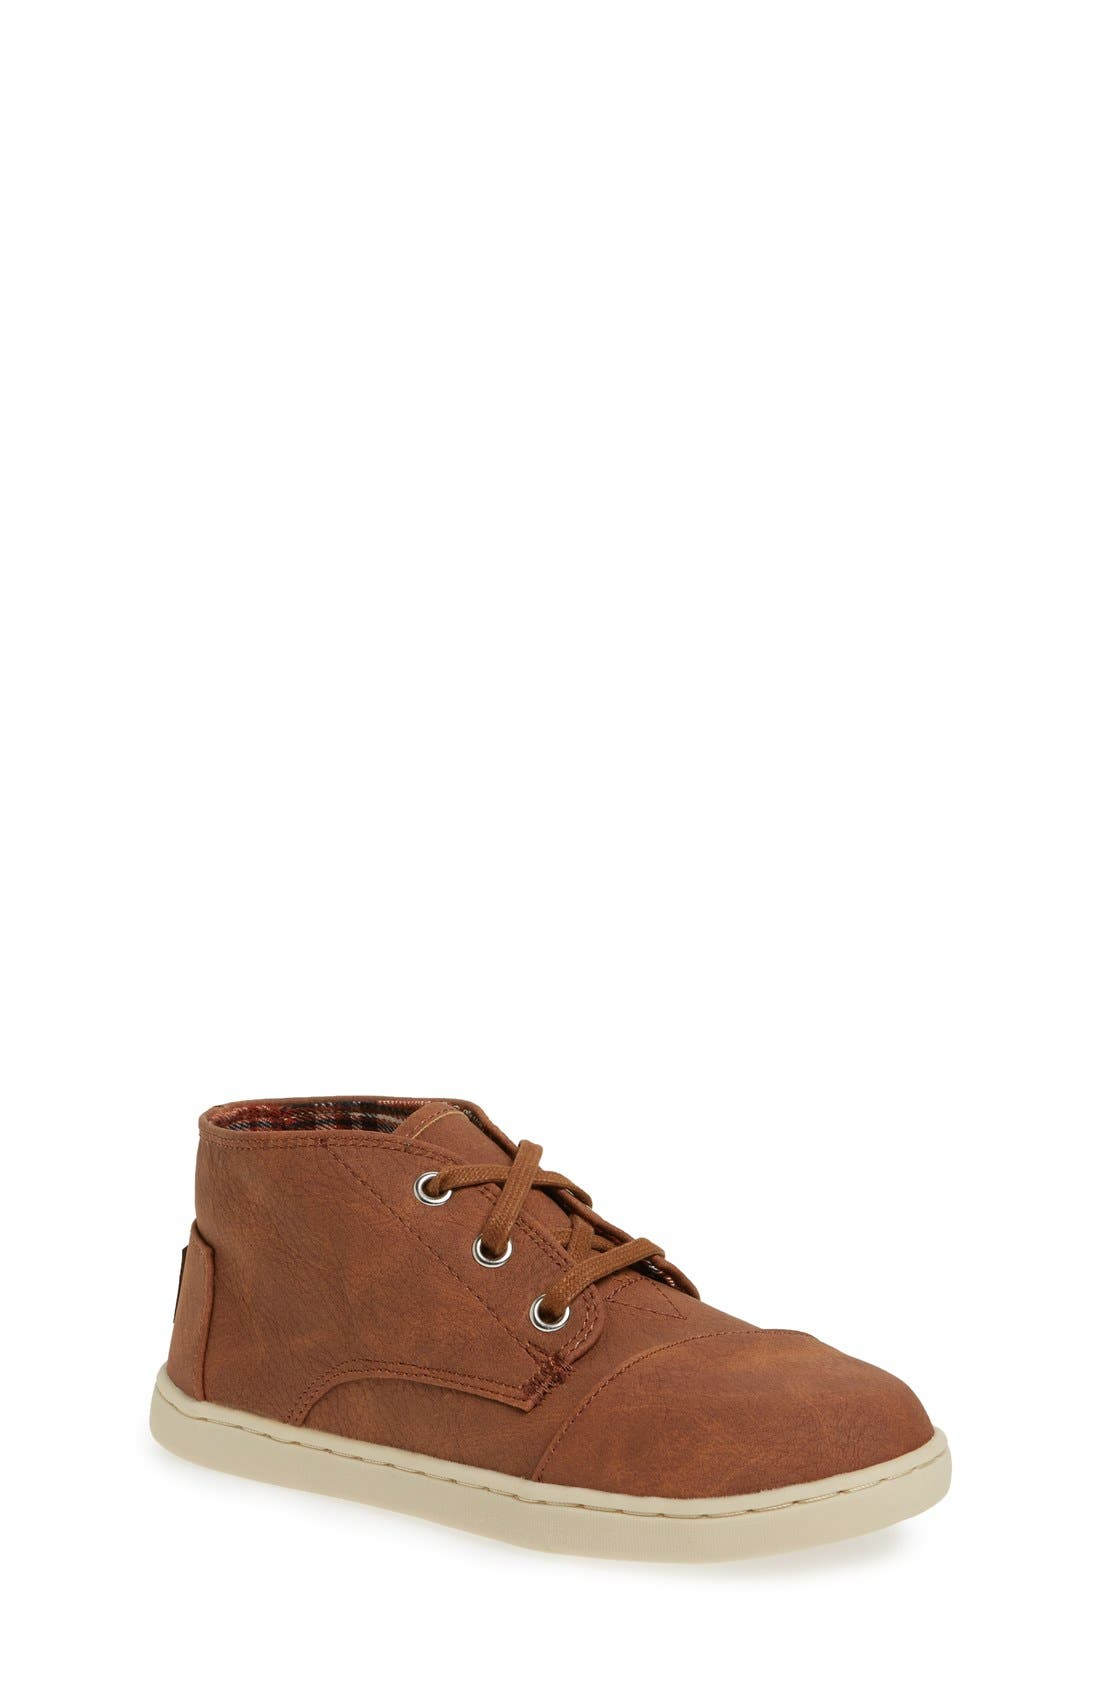 Alternate Image 1 Selected - TOMS 'Paseo - Youth' Mid Boot (Toddler, Little Kid & Big Kid)